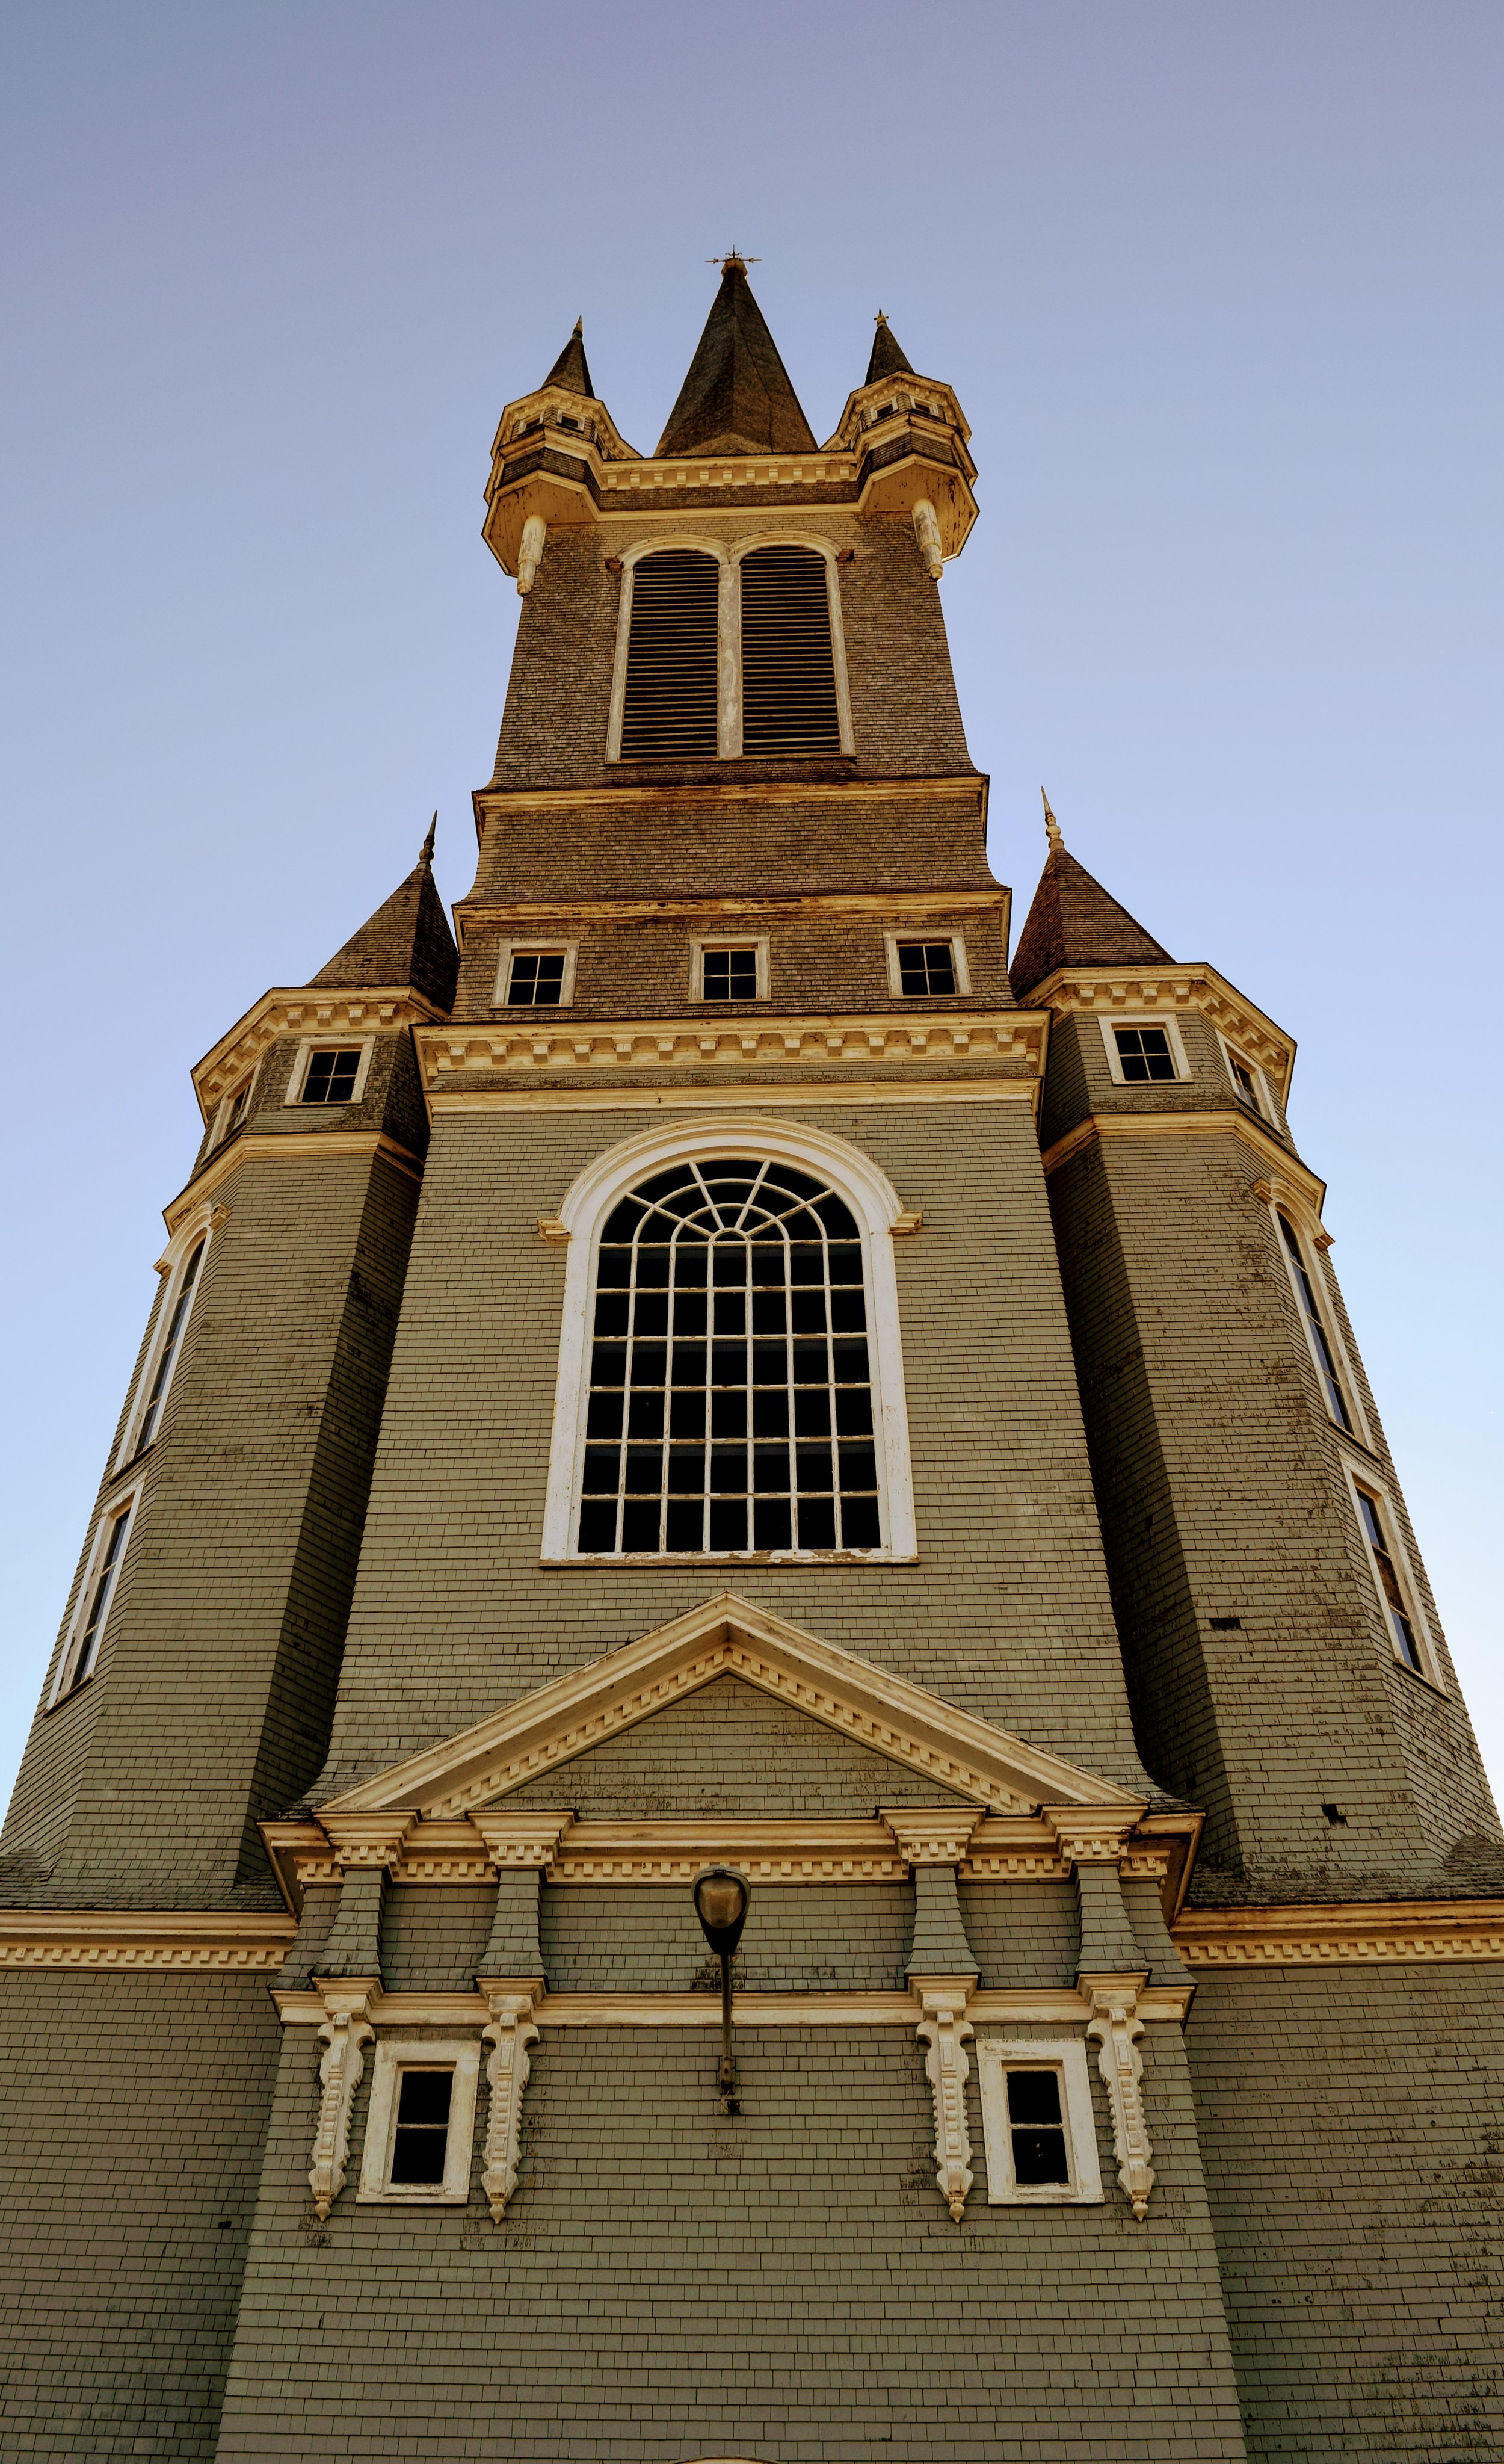 The  Église Sainte-Marie at the   Université Sainte-Anne. One of the largest wooden structures wooden building in North America. Taller than the Statue of Liberty (minus the base).